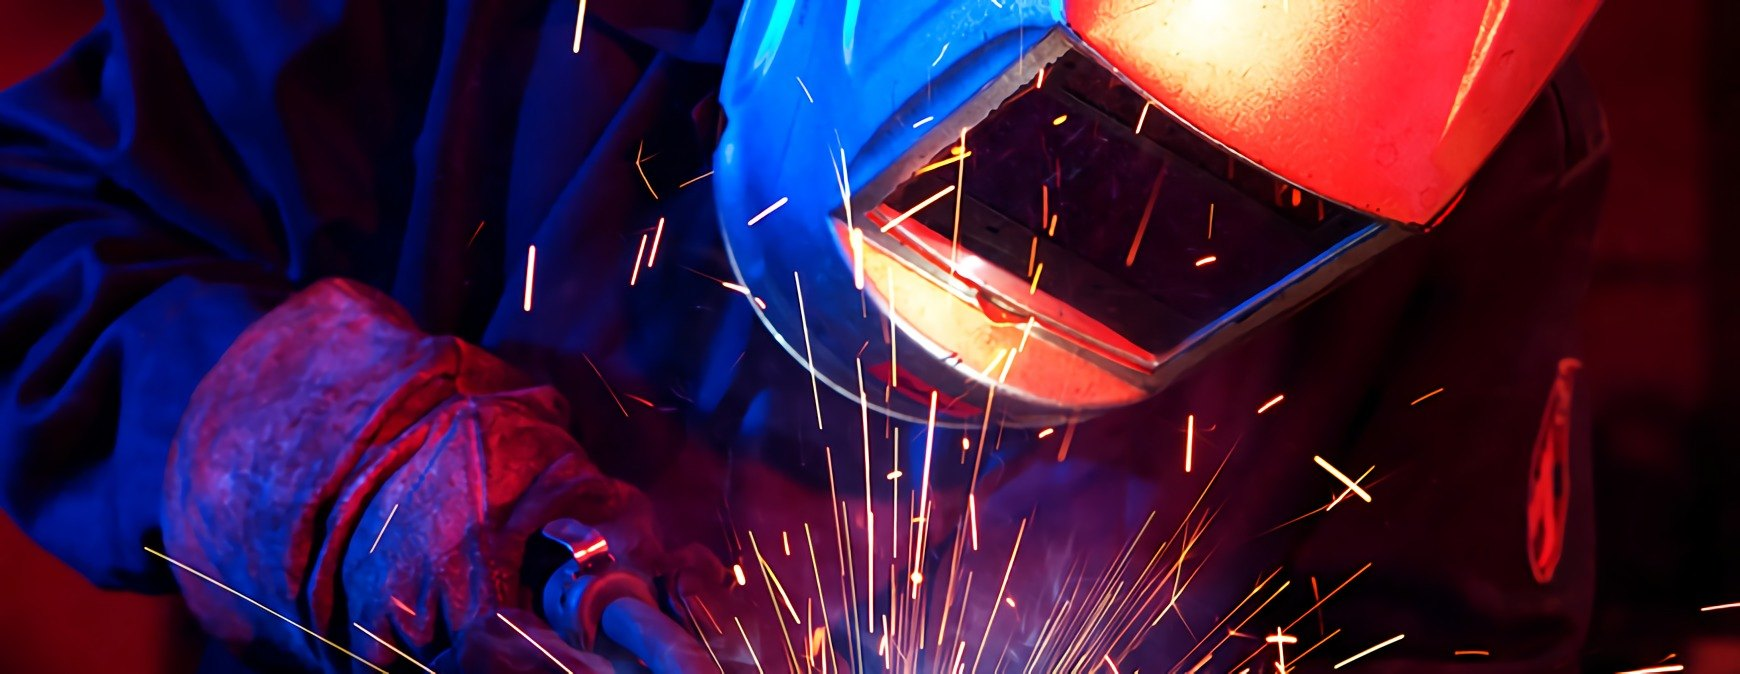 professional welder erecting technical steel